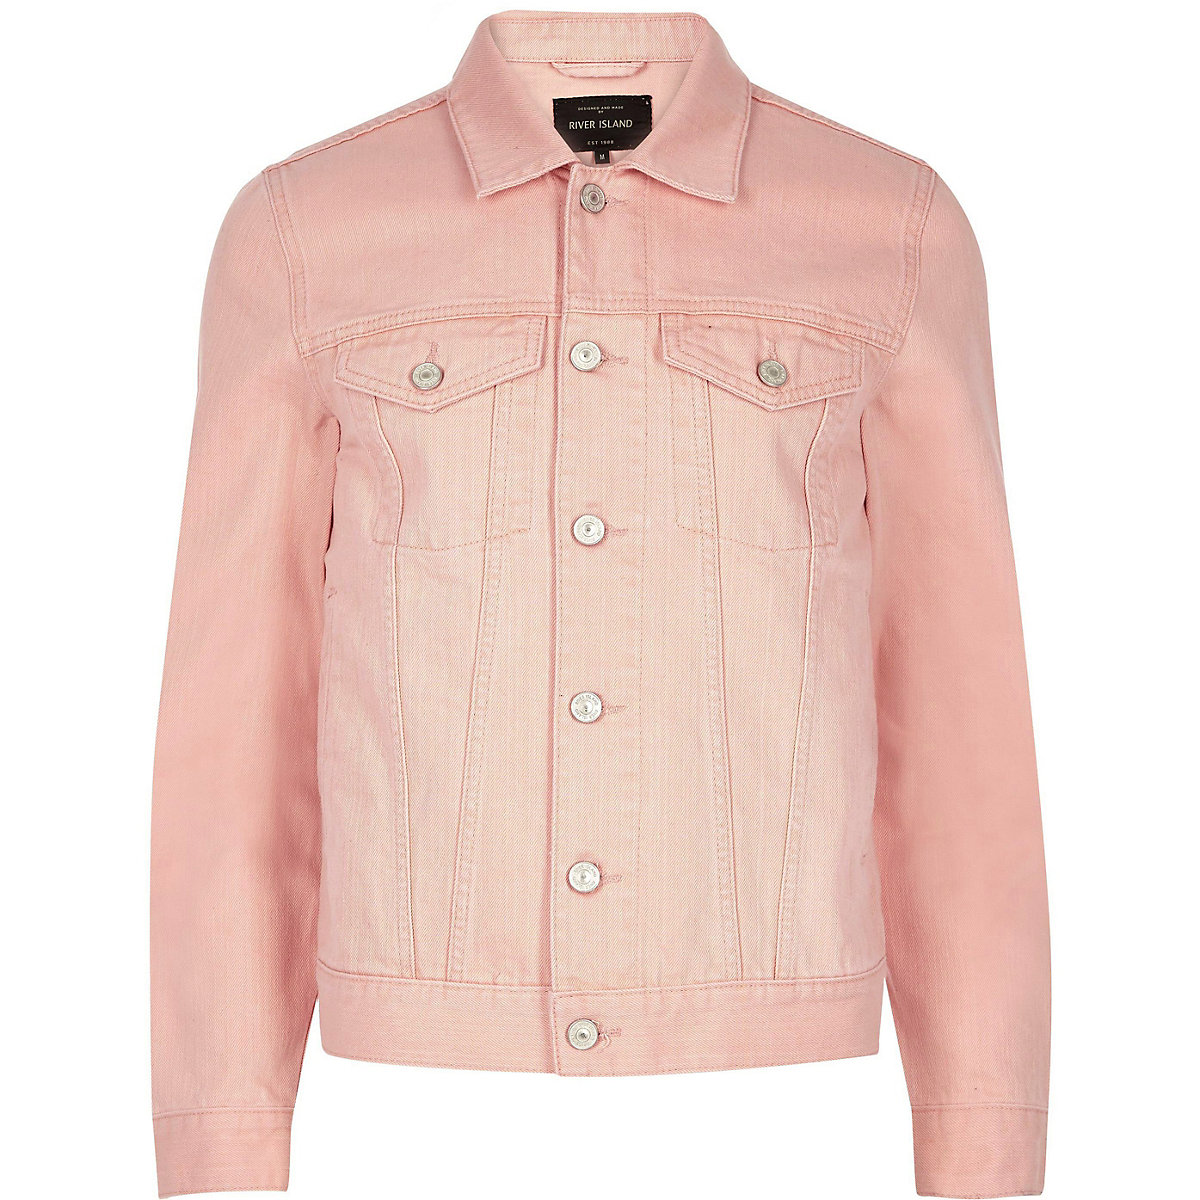 Big And Tall Pink Denim Jacket Jackets Coats Jackets Men